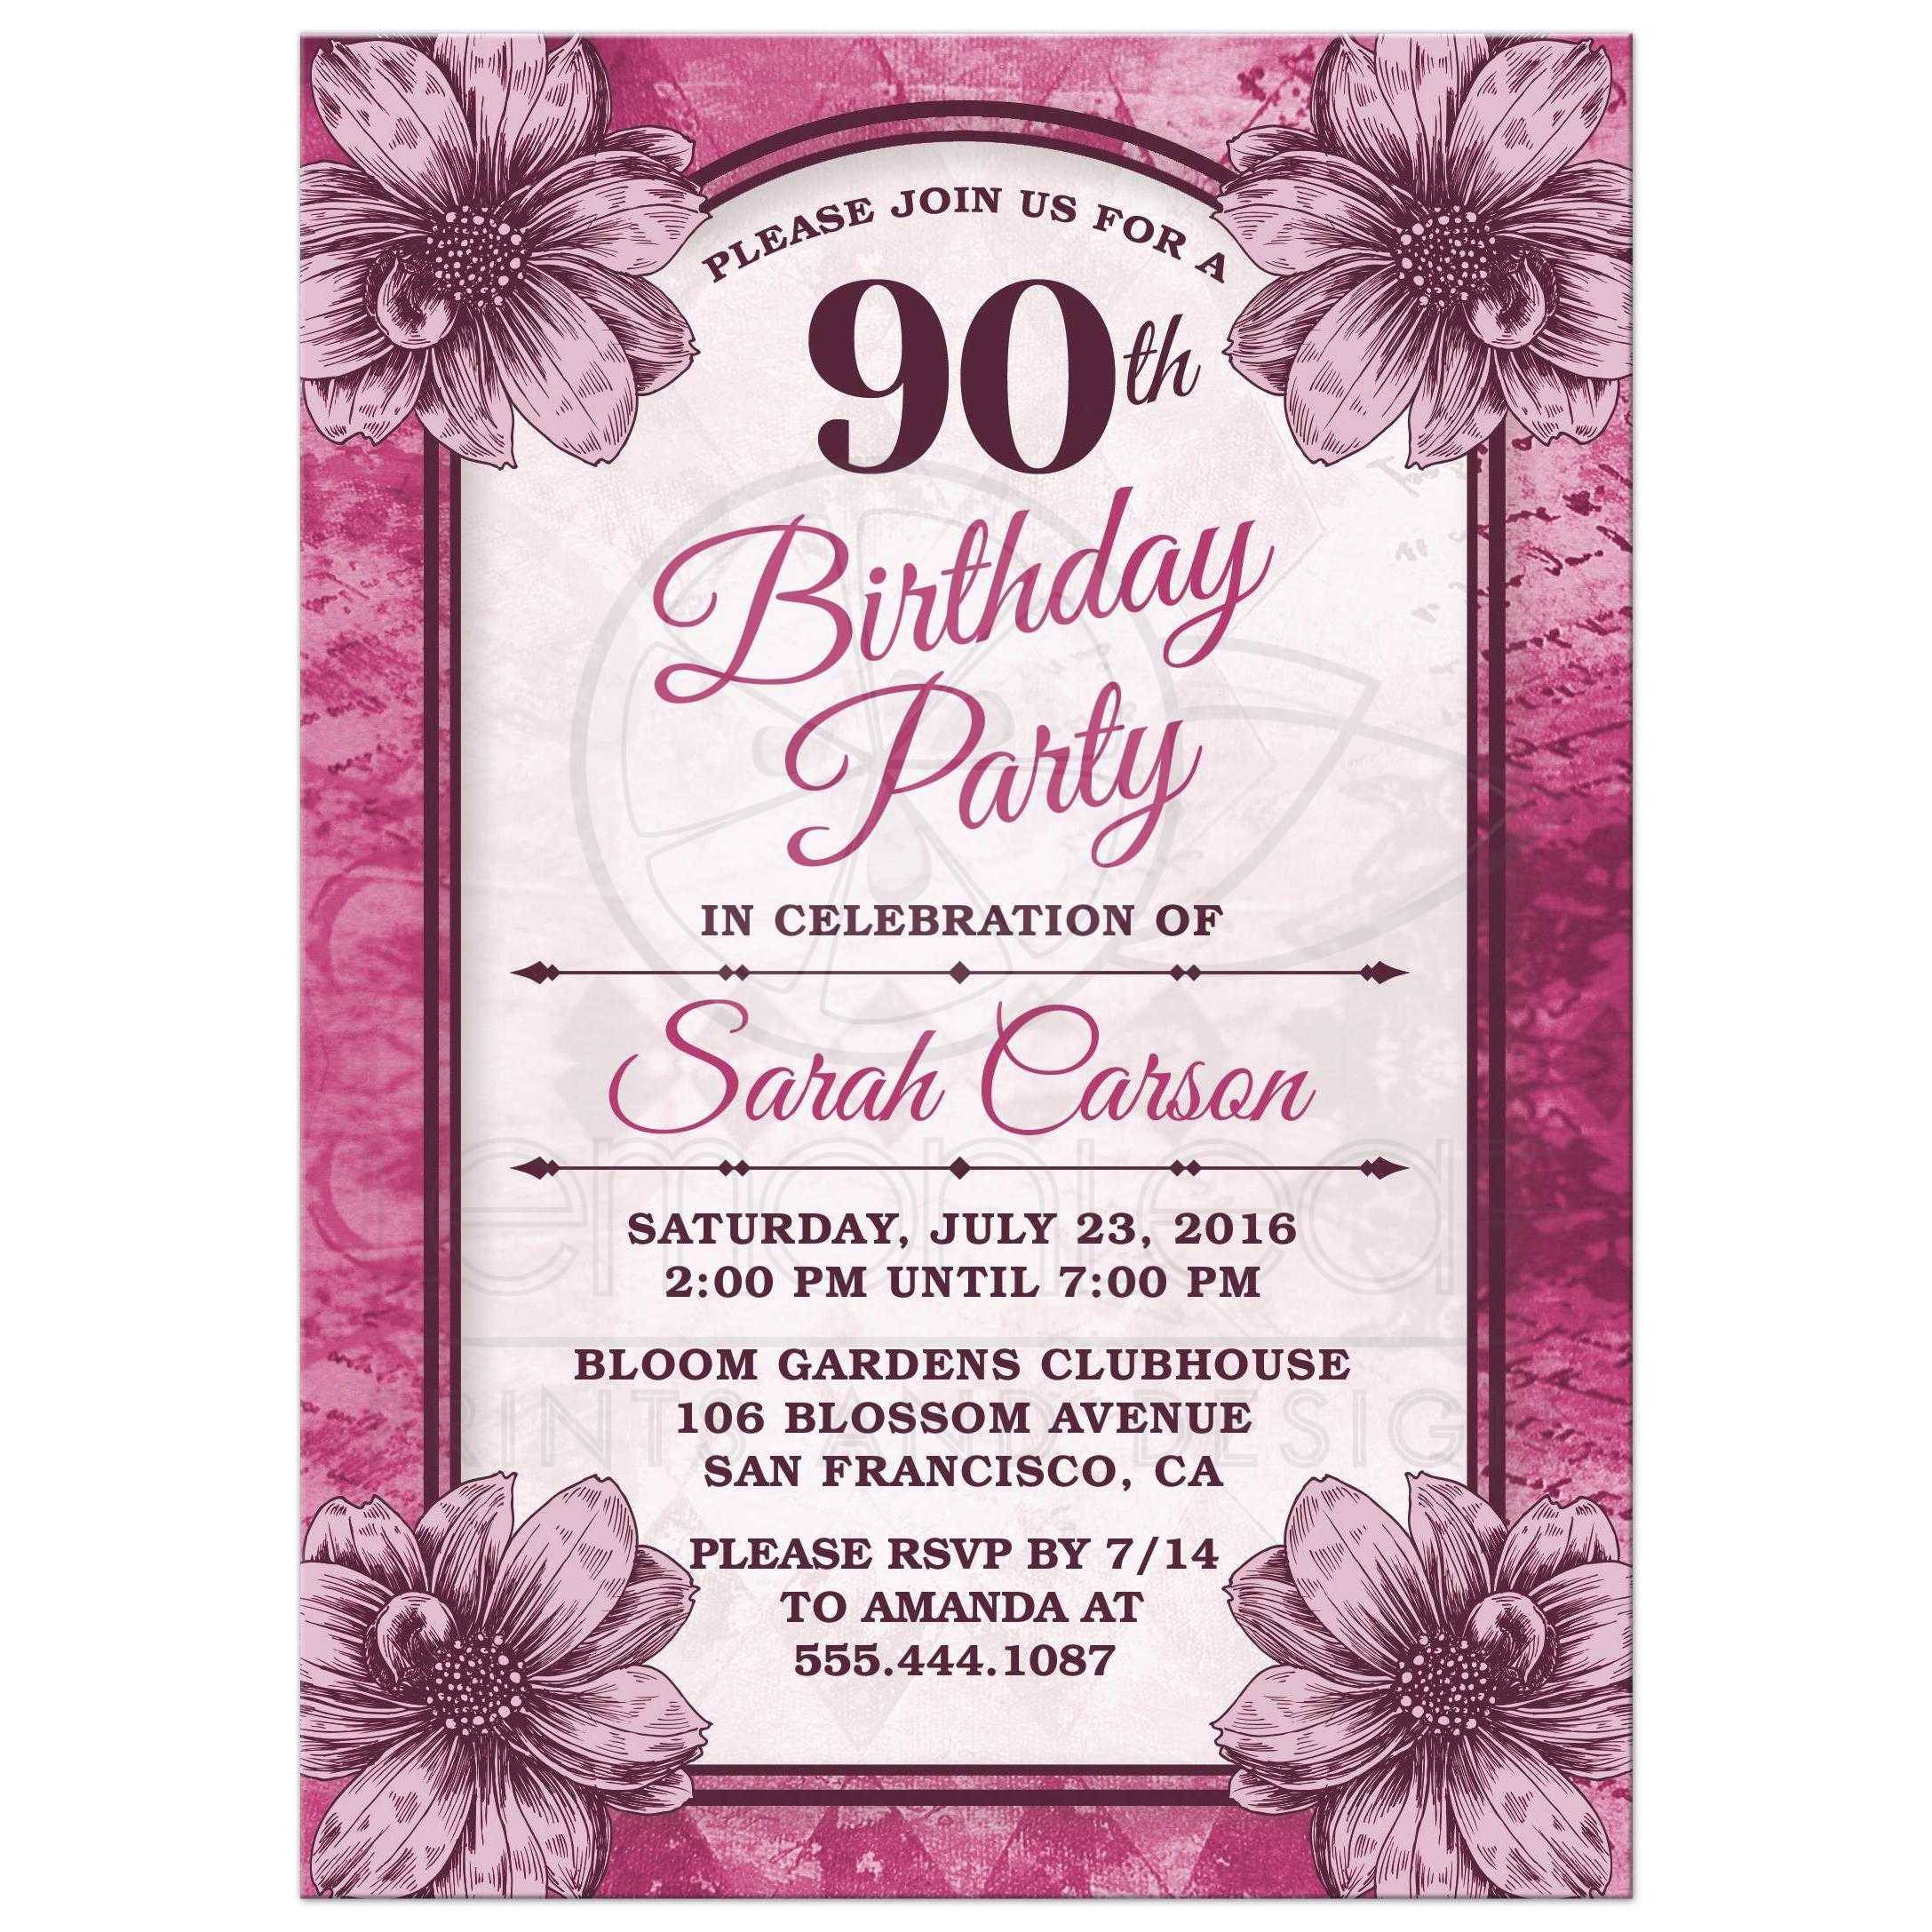 Invitation Template Word Glamorous Birthday Invitation Templates  Birthday Invitation Templates Word .